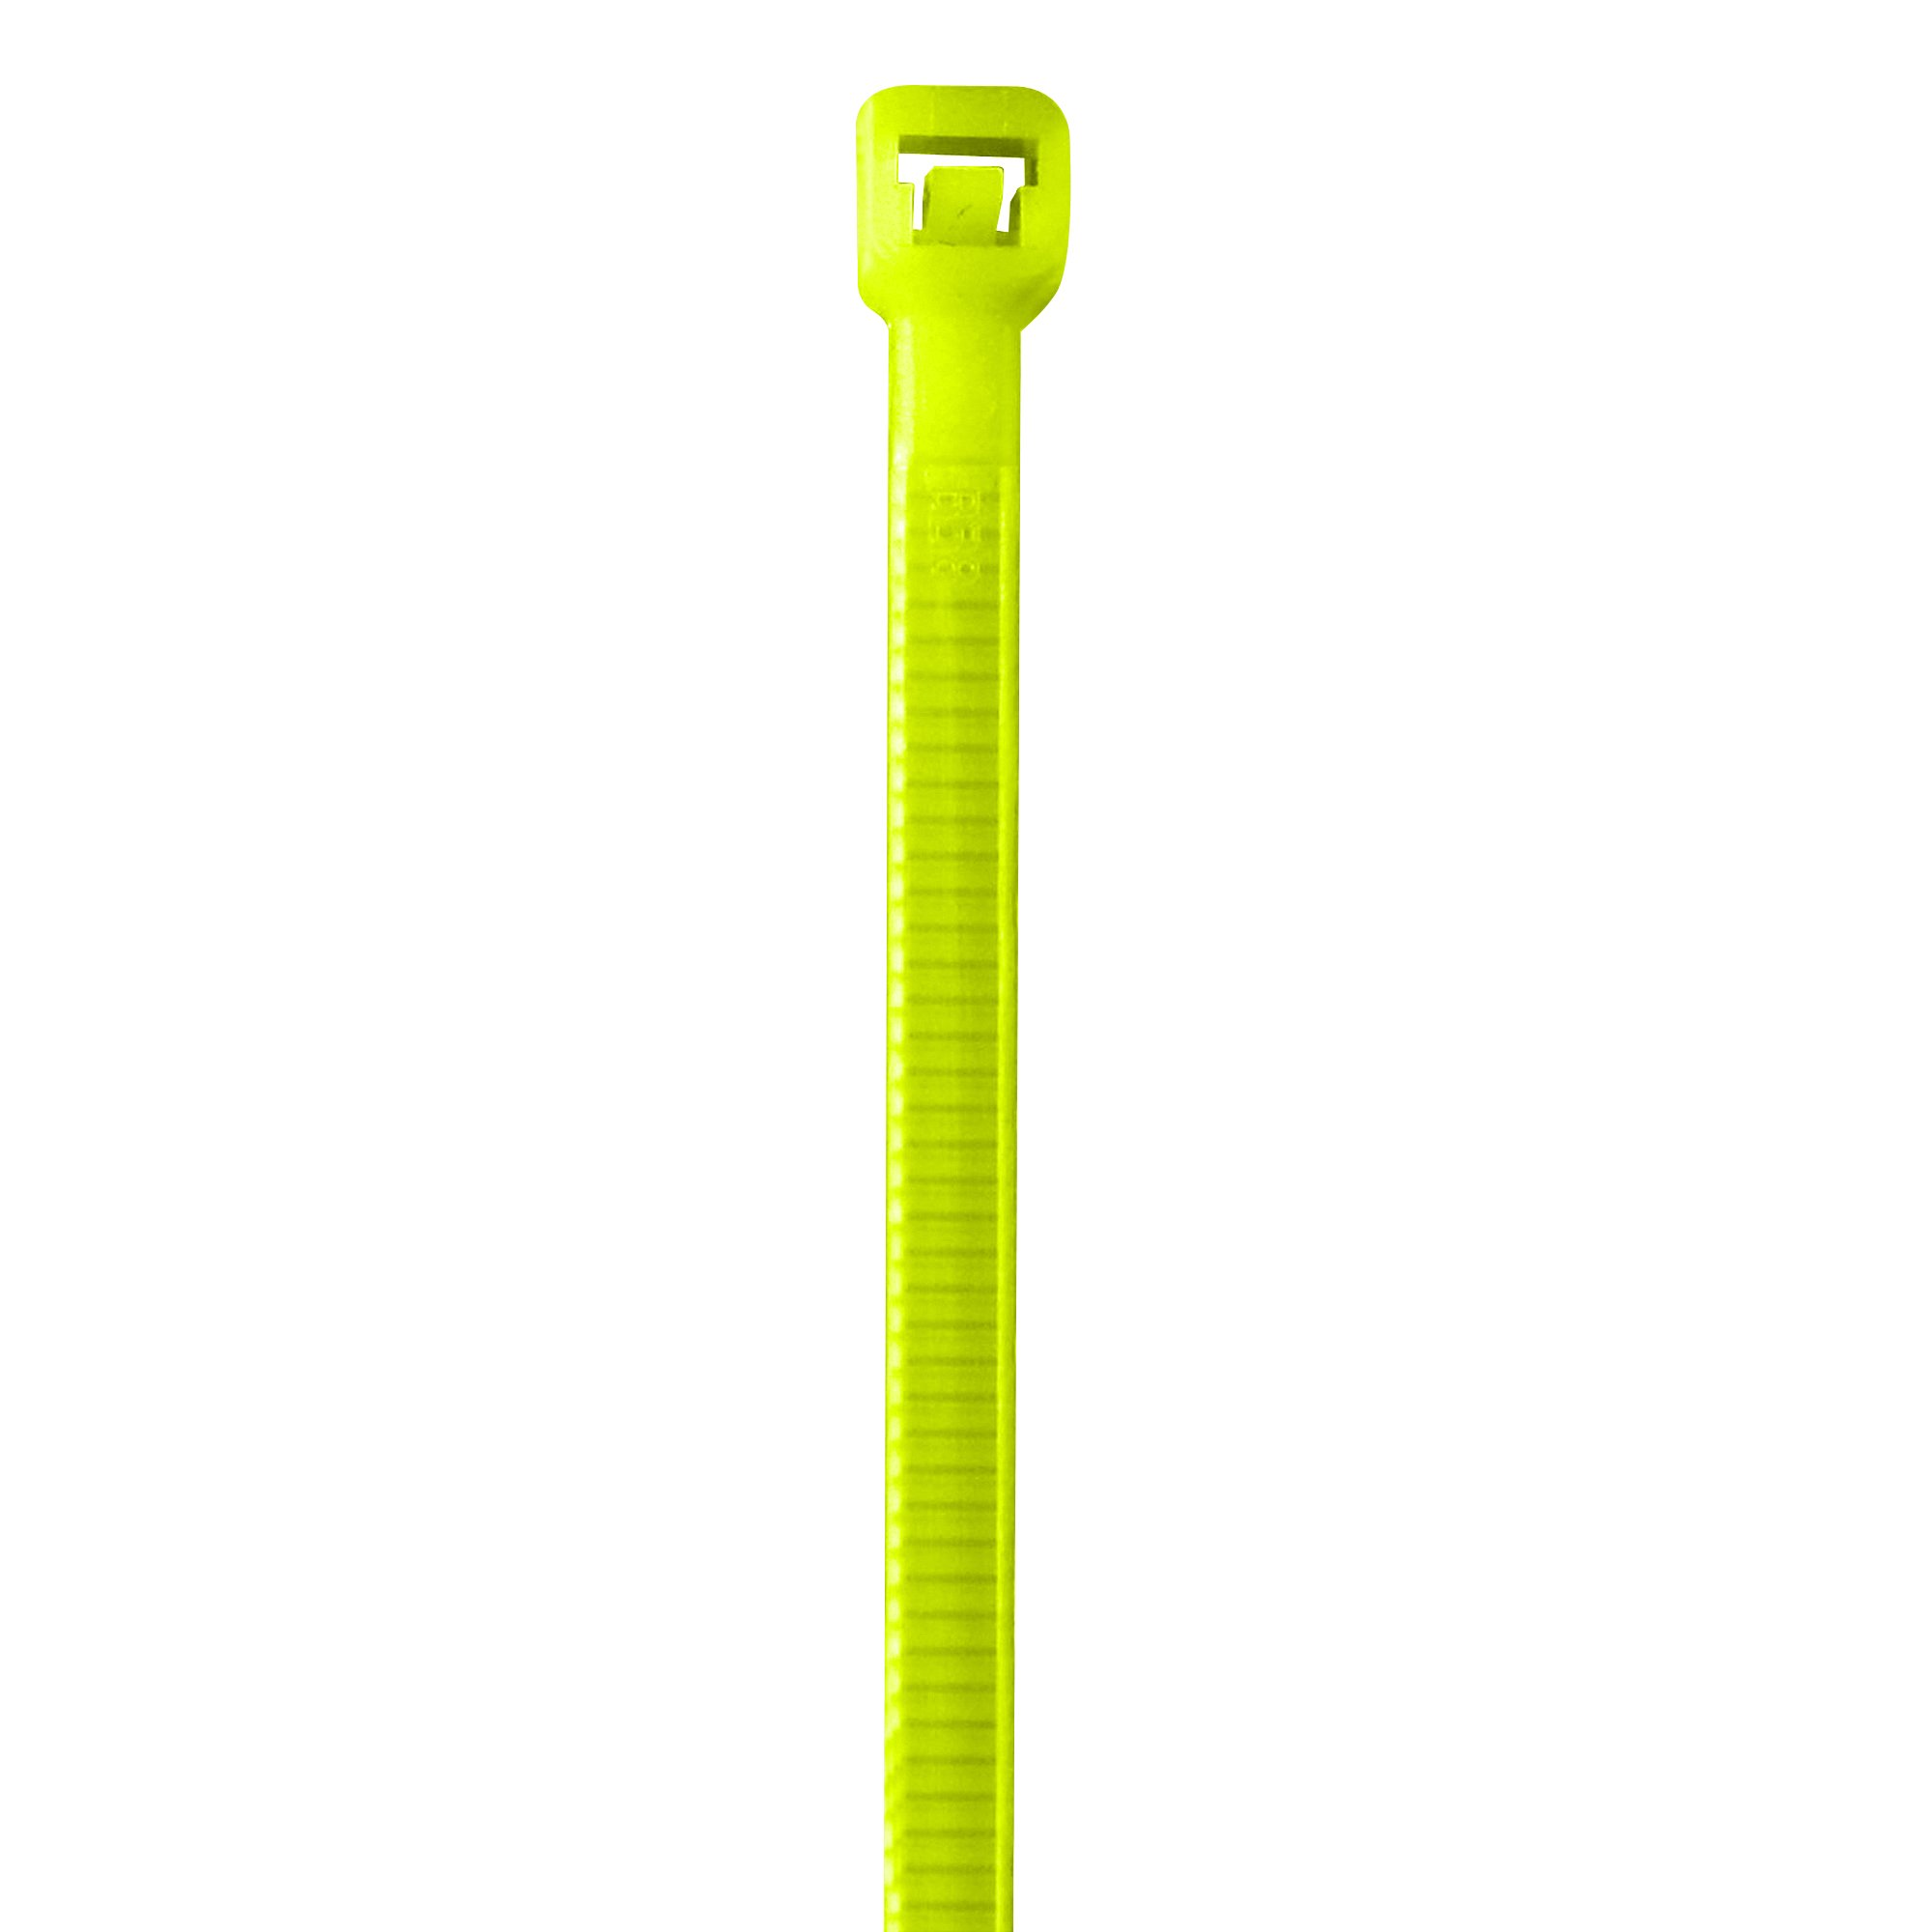 BOX USA BCT444J Colored Cable Ties, 40#, 8'', Fluorescent Yellow (Pack of 1000)